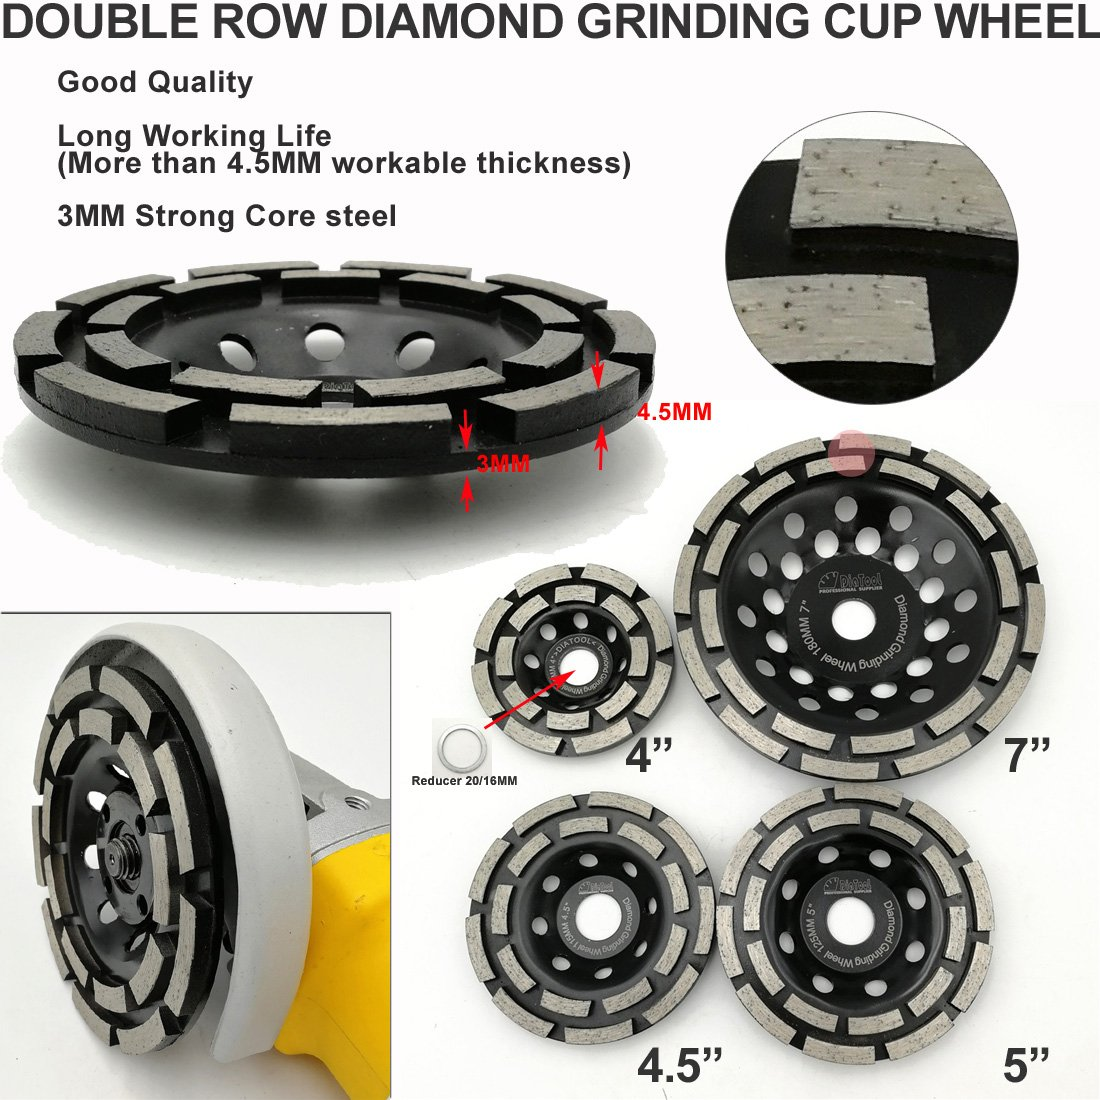 SHDIATOOL 4.5 Inch Diamond Double Row Grinding Cup Wheel for Concrete Masonry Granite Marble